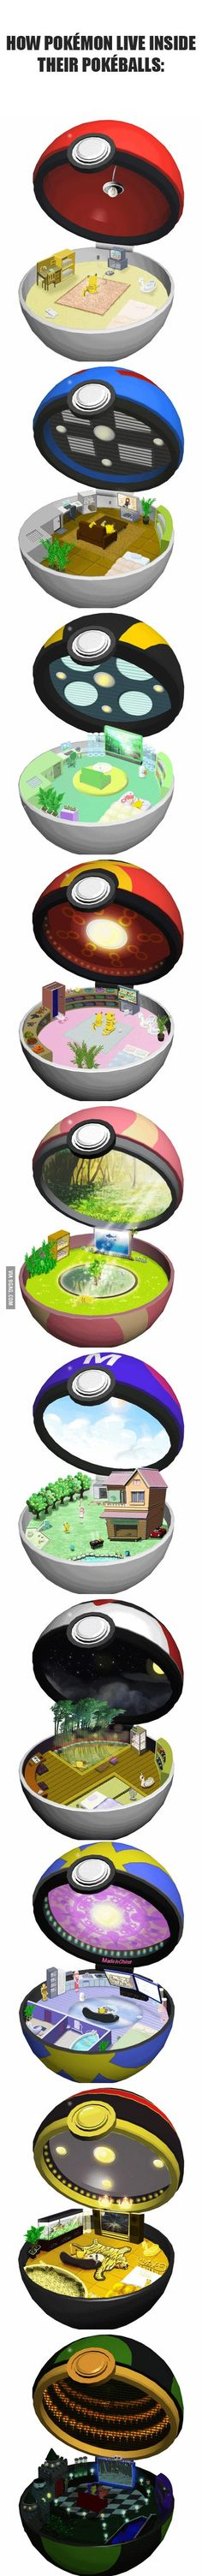 How Pokemon live inside their pokeballs